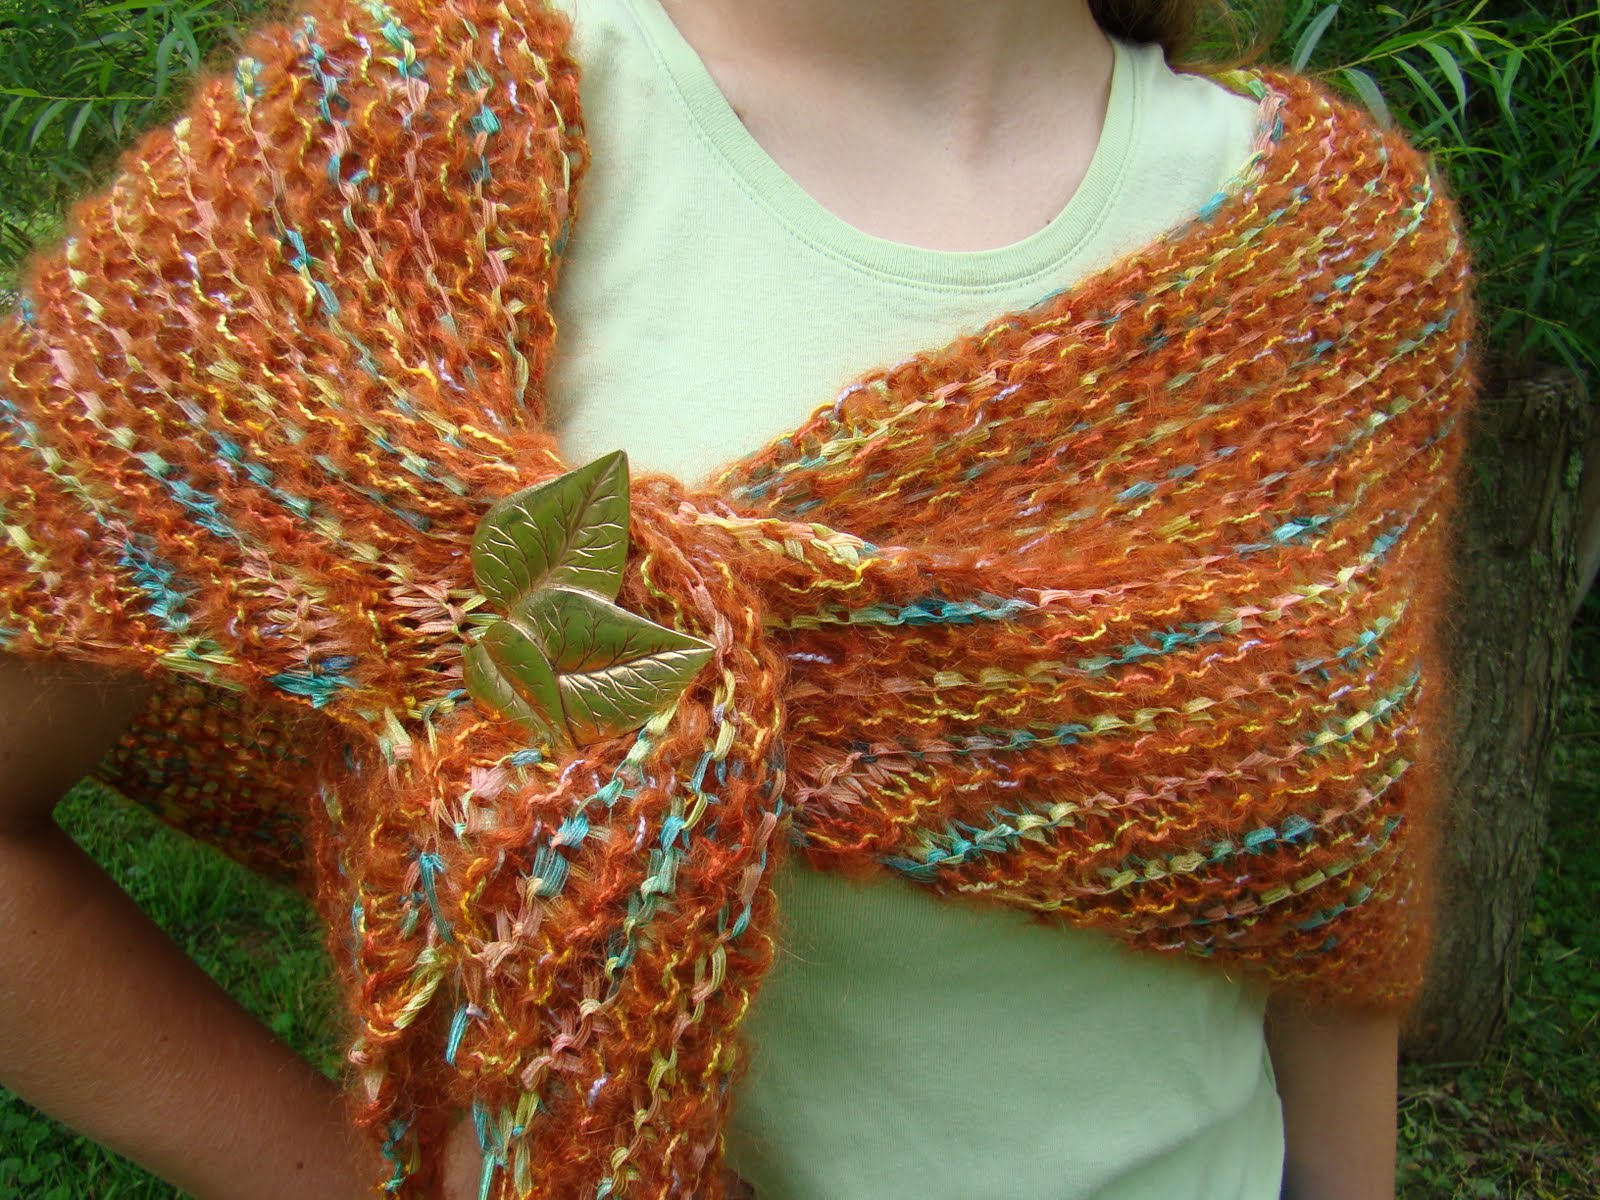 Knitting Patterns For Triangle Shawls : Rurification: Mohair and Ribbon Triangle Shawl